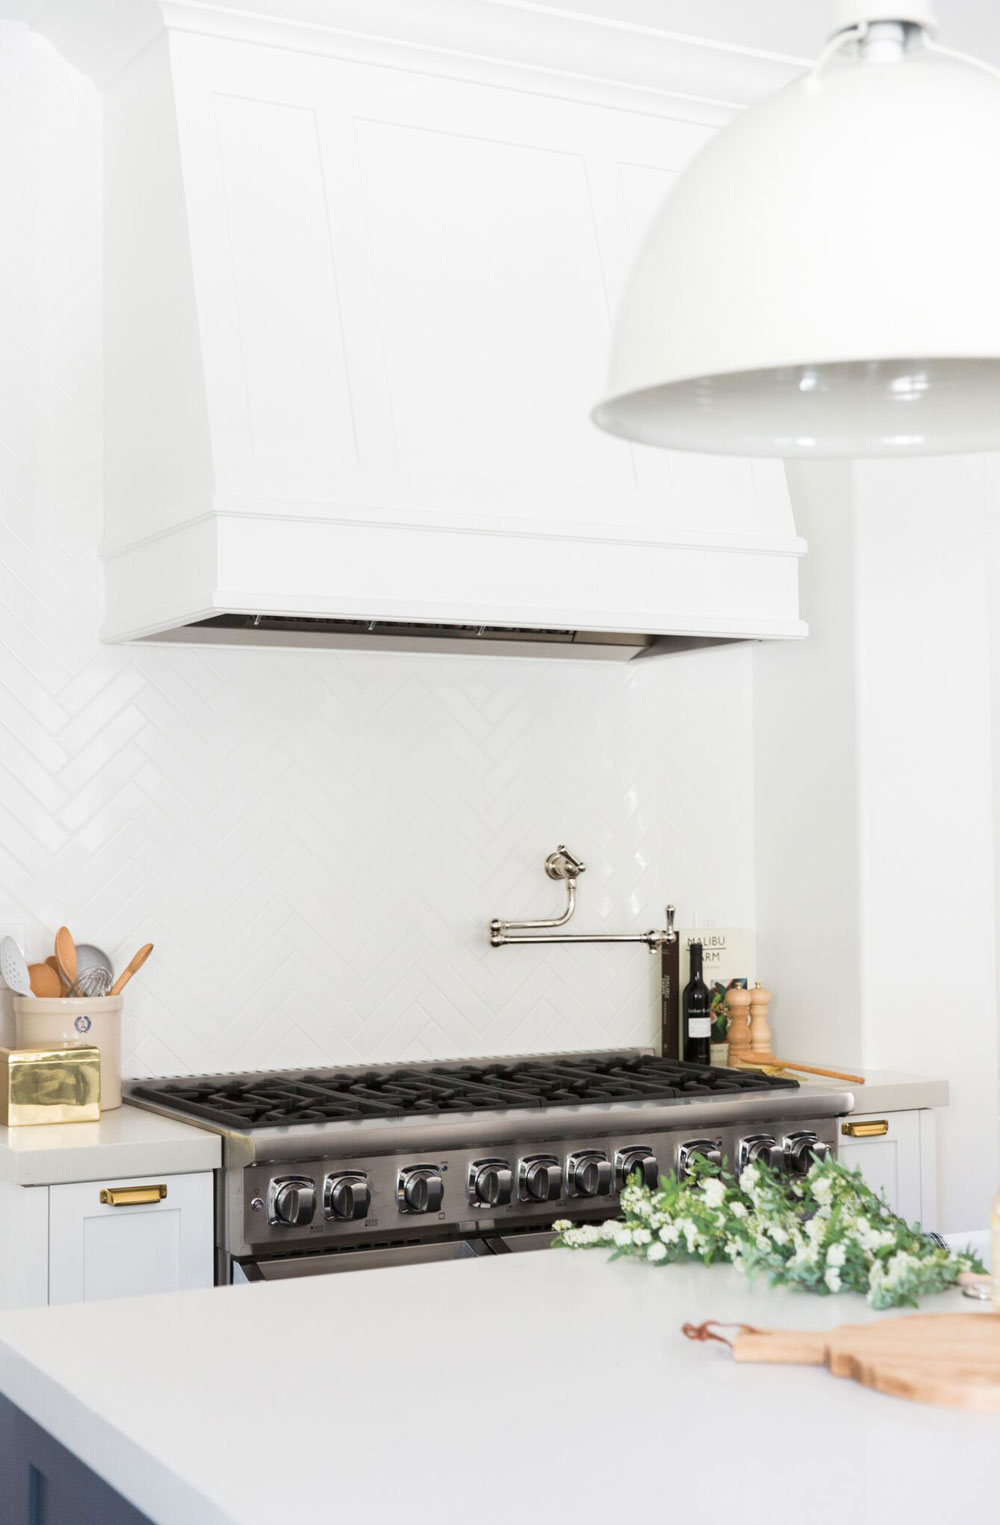 My future kitchen renovation ideas are over on the blog, including white gloss tiles in a herringbone pattern and white grouting.